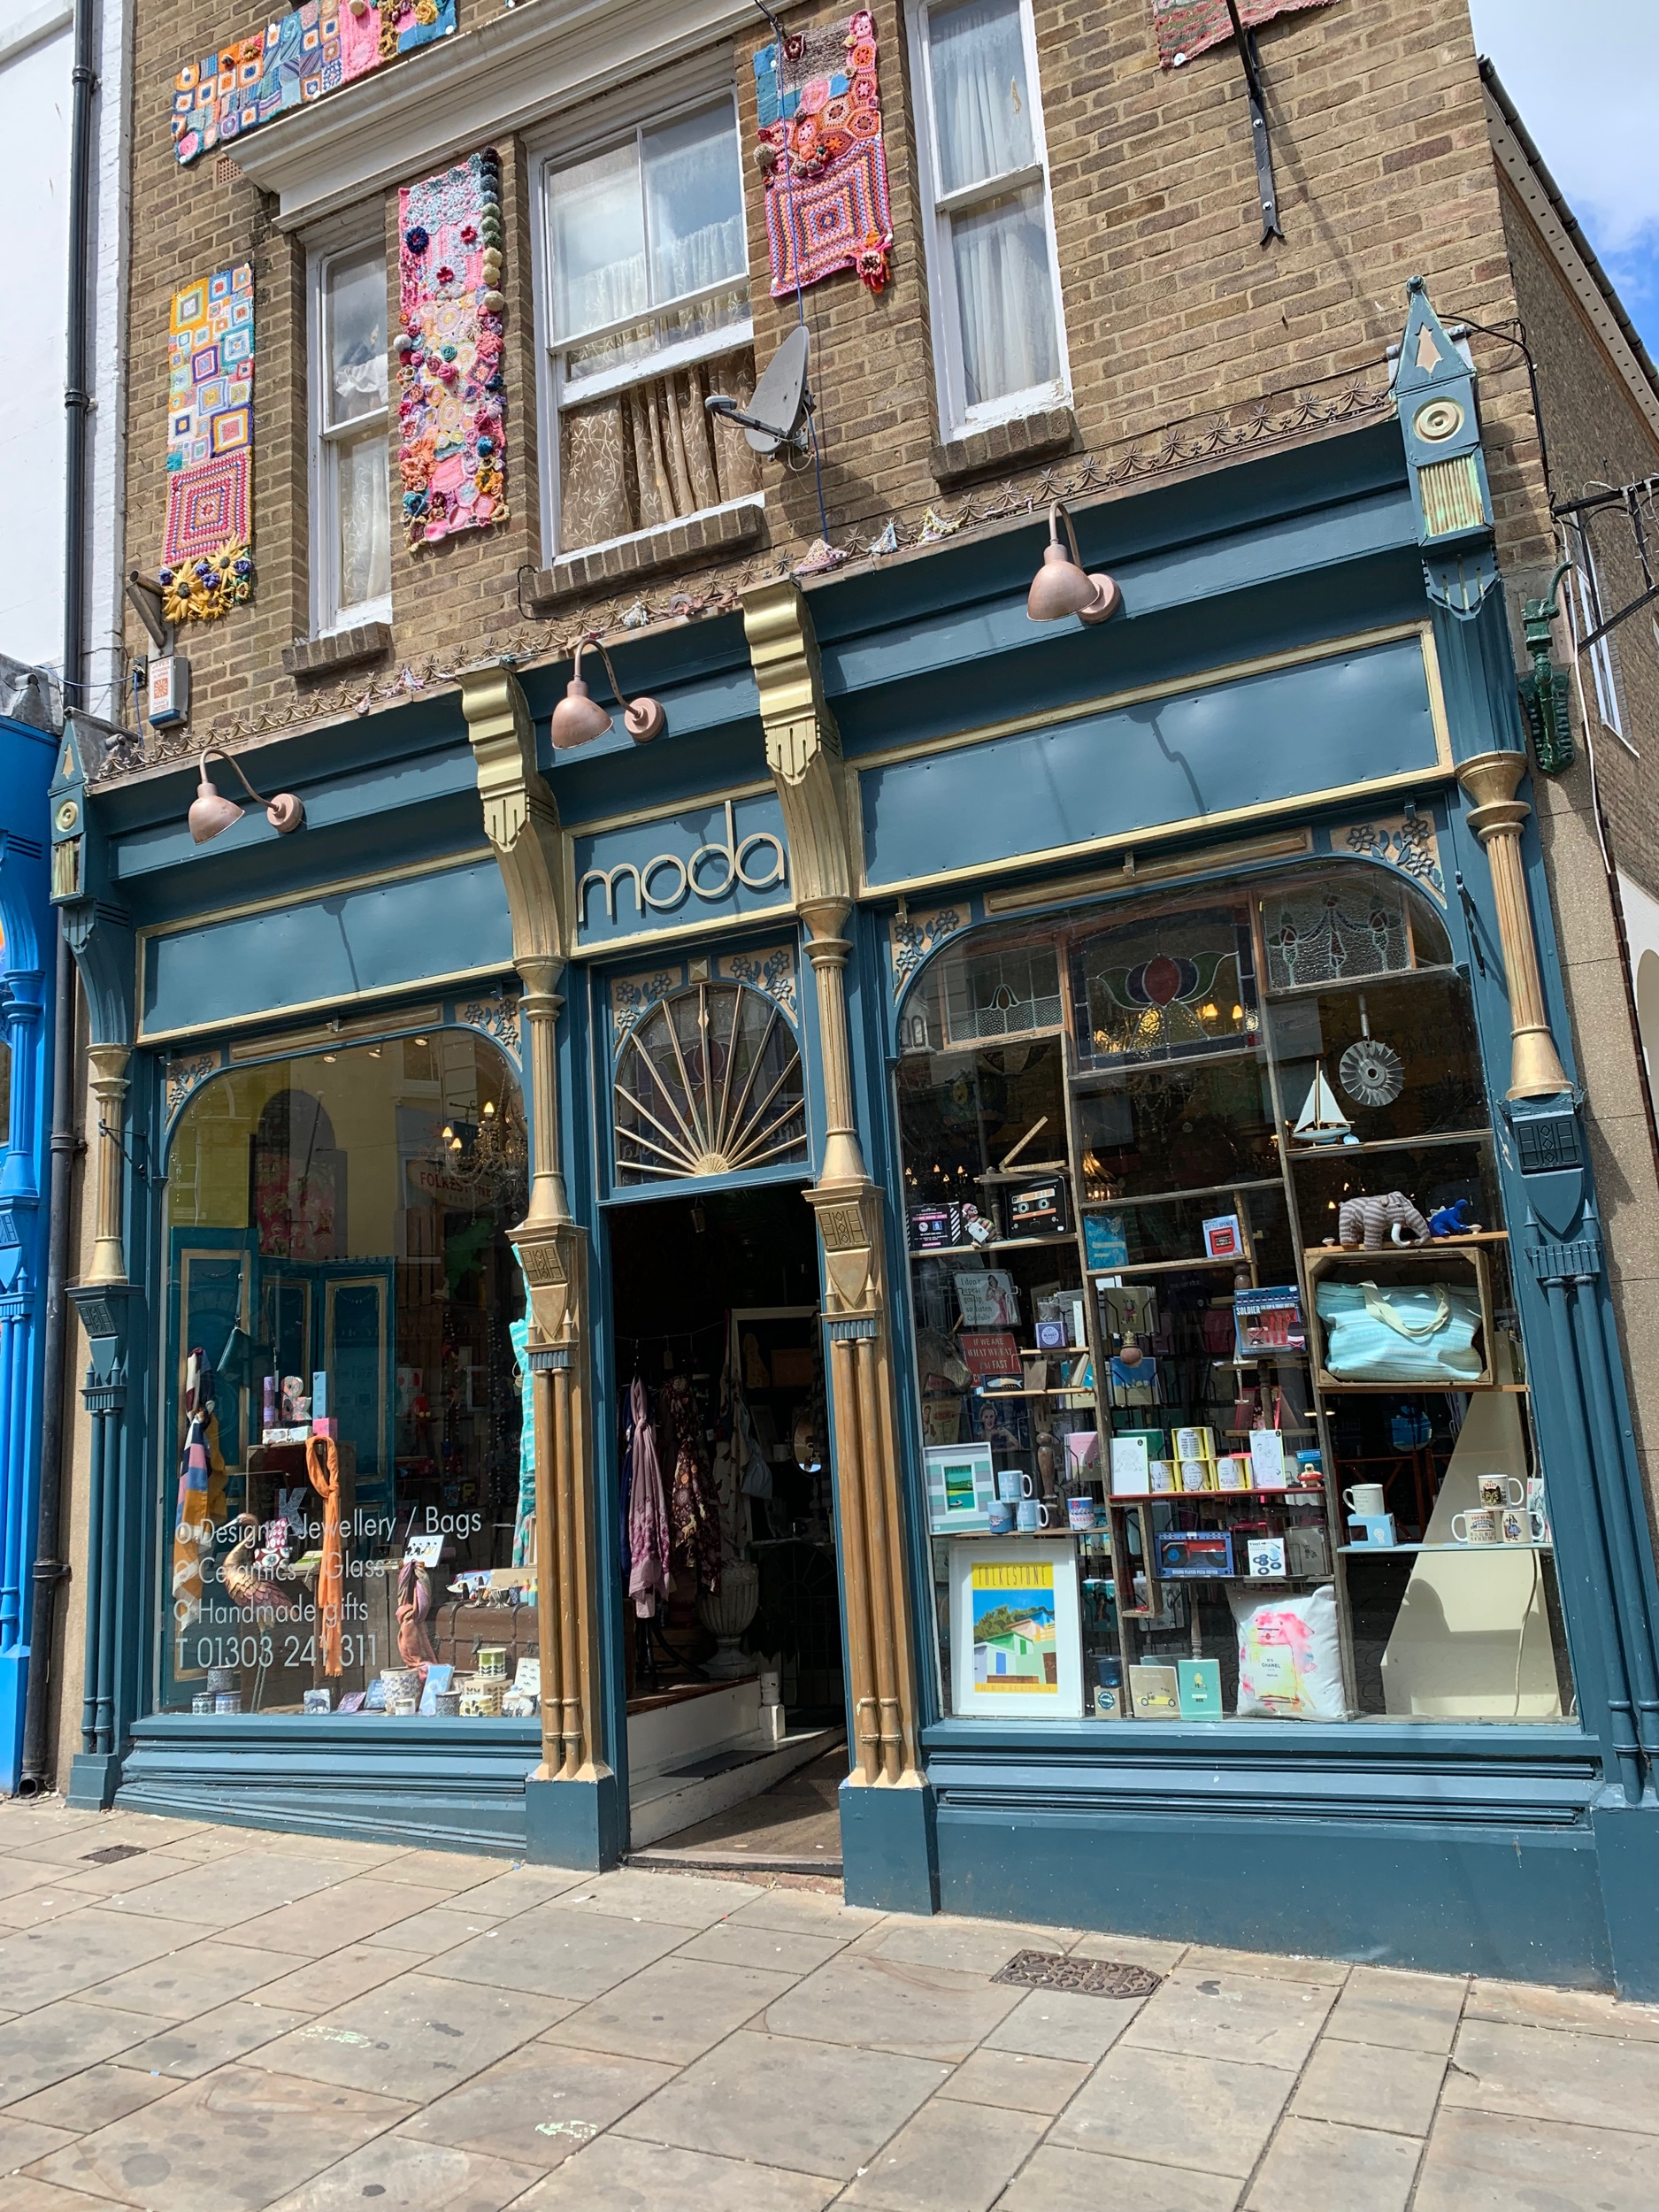 Moda . And emporium of eclectic things and Folkestone souvenirs.